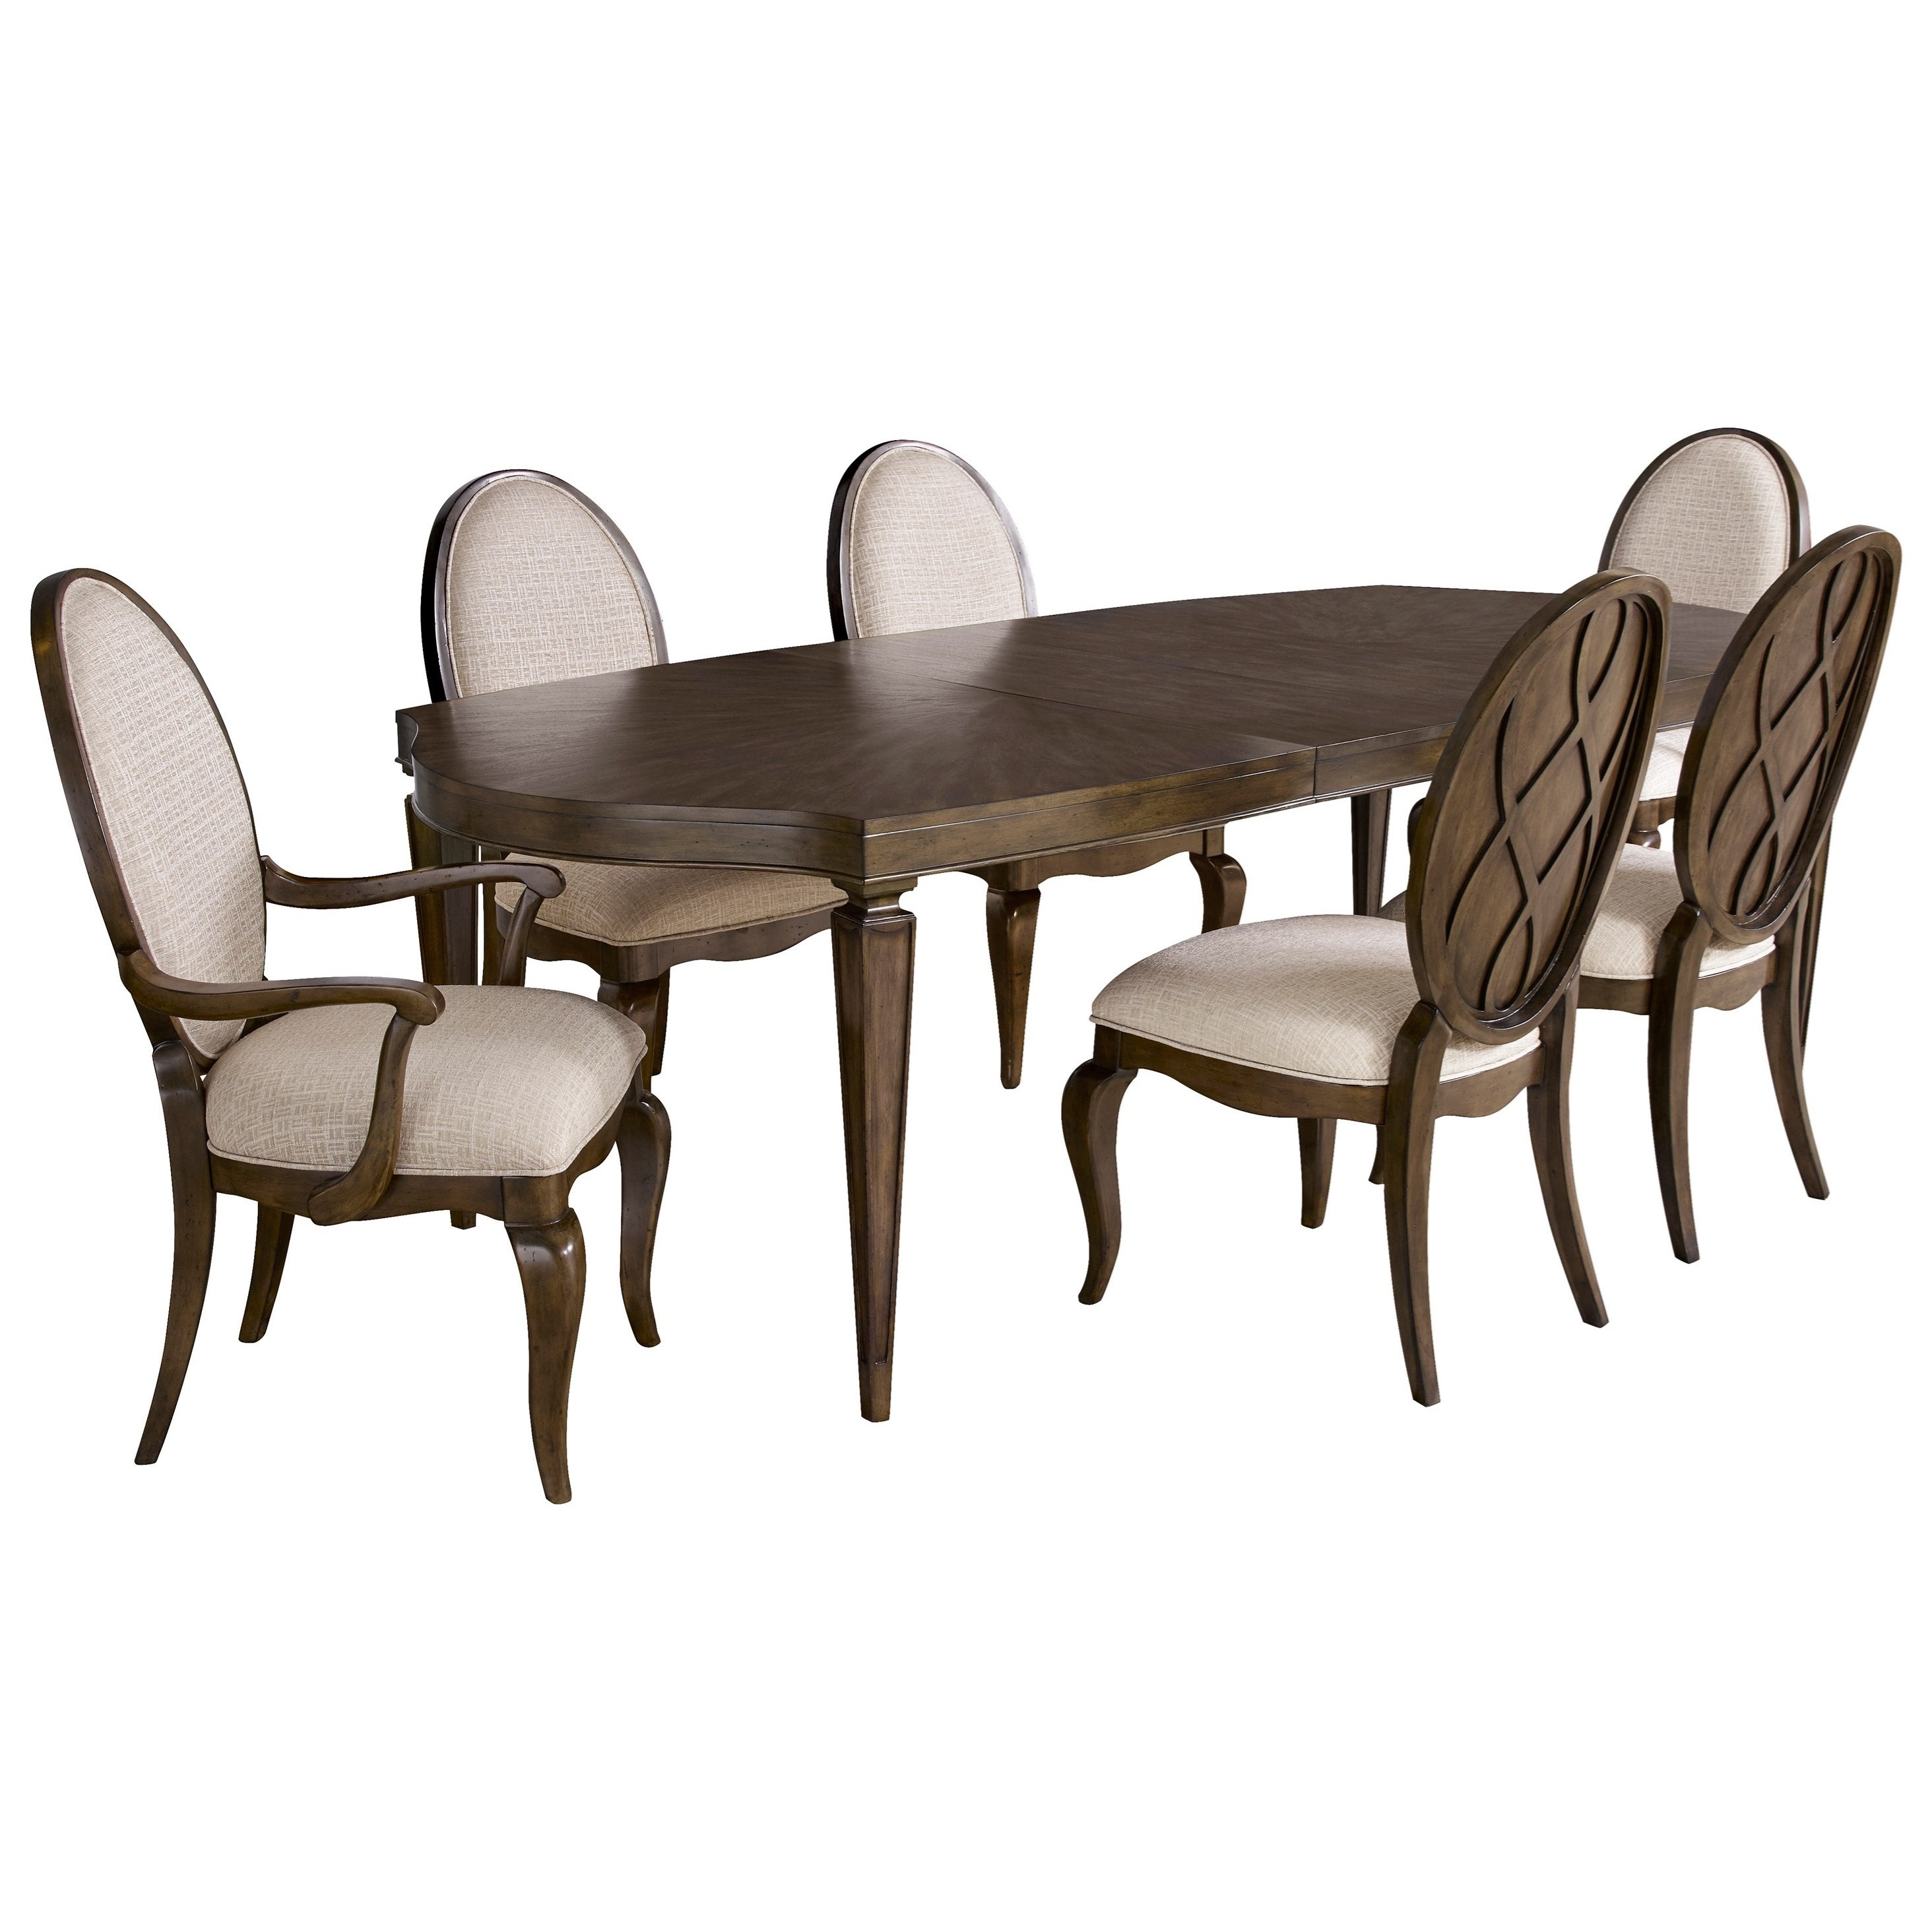 Broyhill Furniture Cashmera 7 Piece Table and Chair Set - Item Number: 4860-532+2x580+4x581